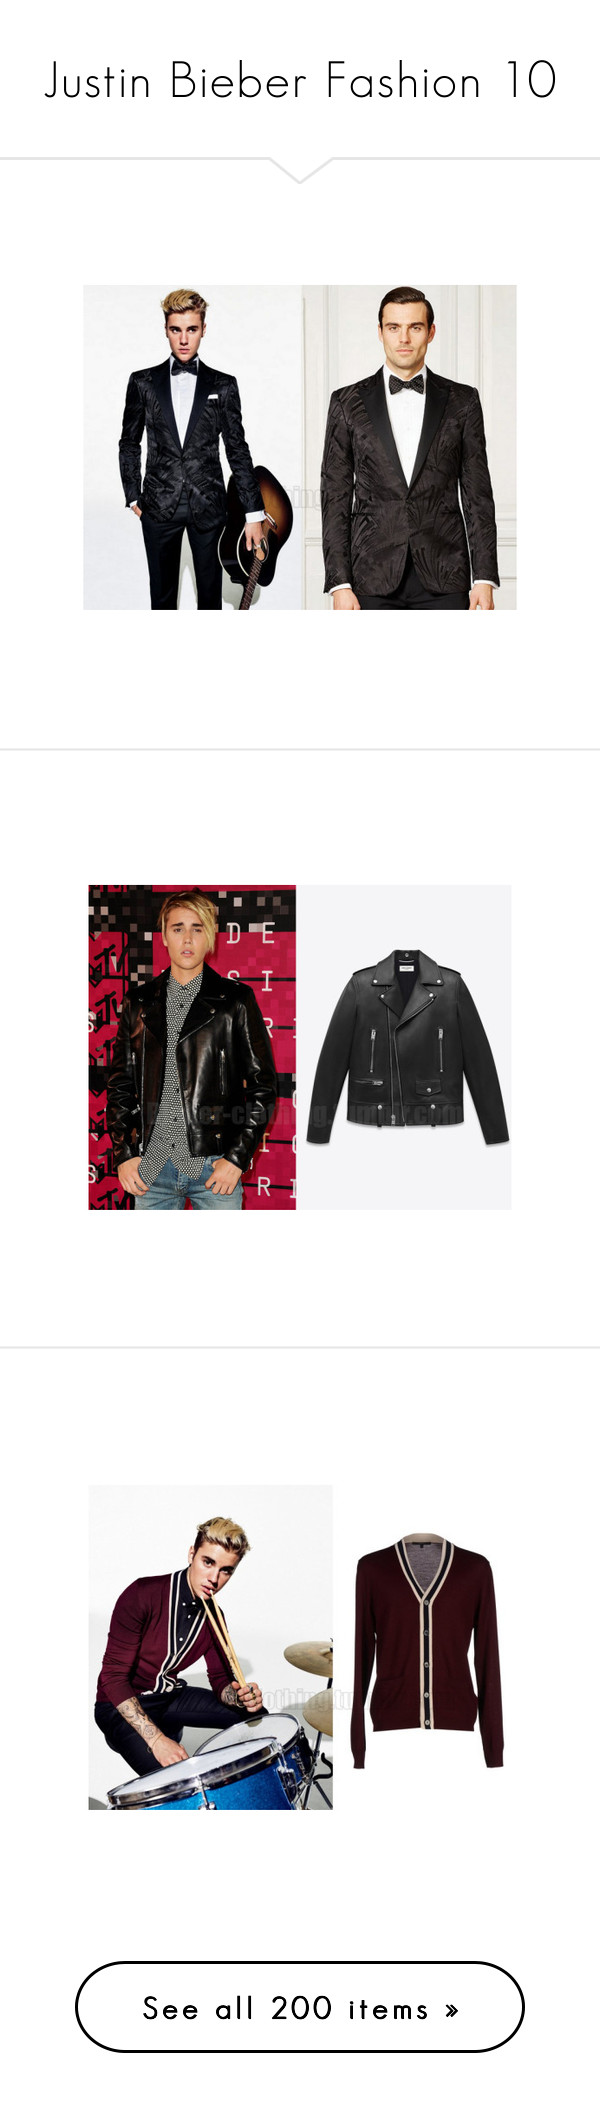 """""""Justin Bieber Fashion 10"""" by laurie-2109 ❤ liked on Polyvore featuring justin bieber, jewelry, heart shaped jewelry, justin bieber jewelry, heart jewelry, shirt jacket, accessories, blue jersey, utility shirt and work shirts"""